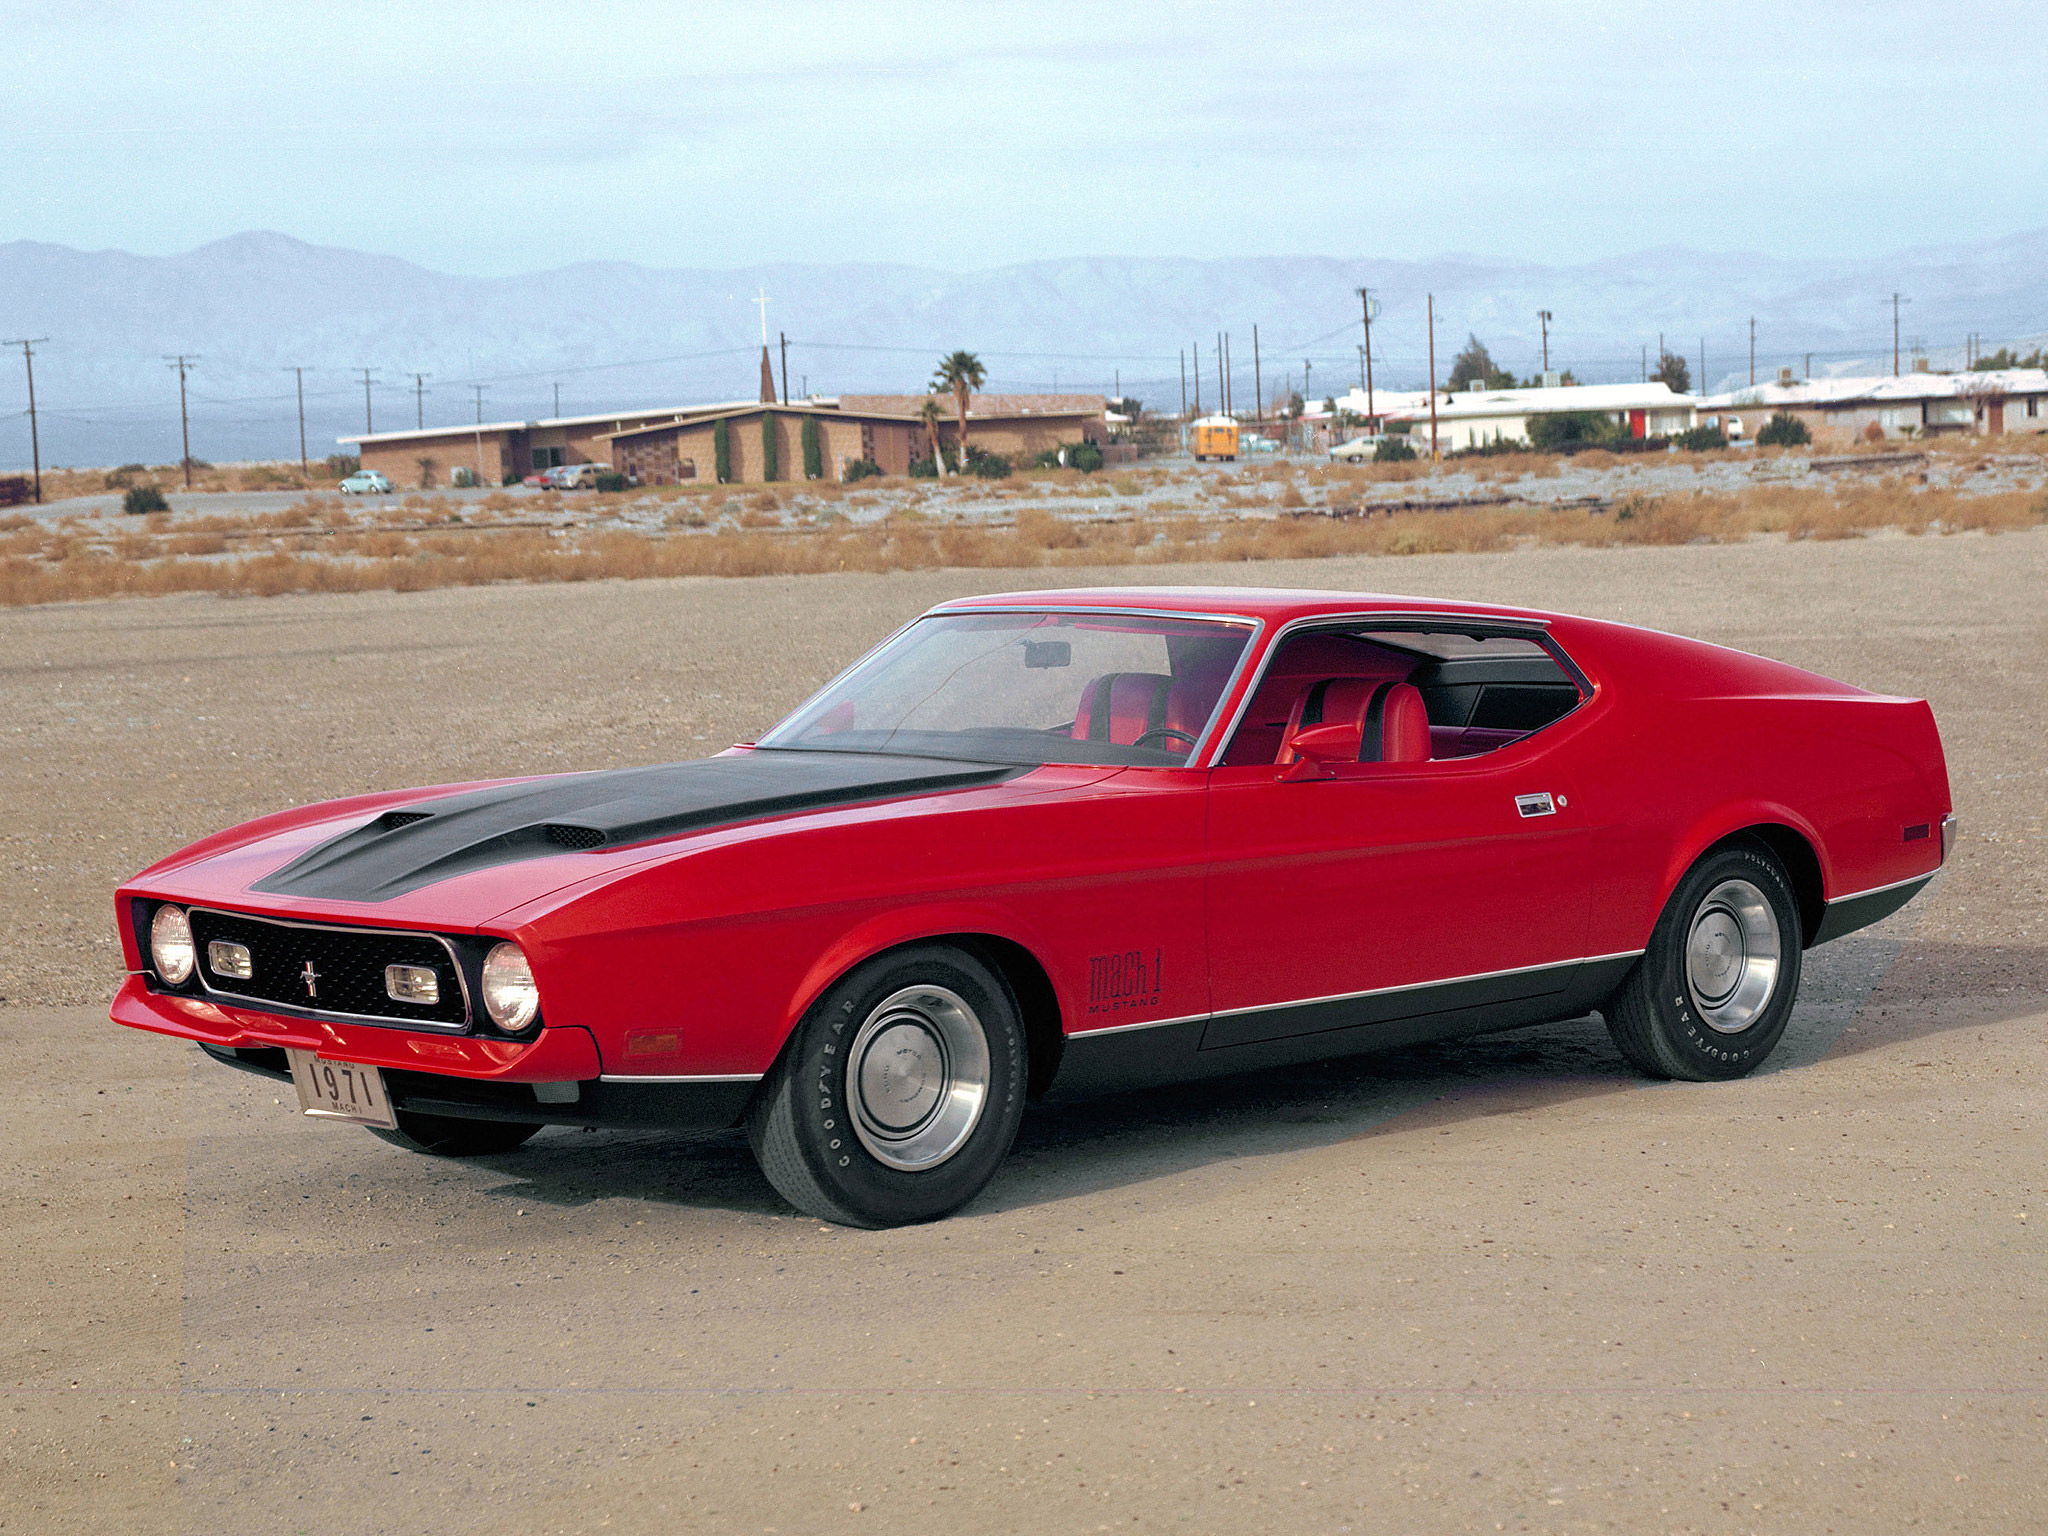 Red 1971 Mach 1 Mustang